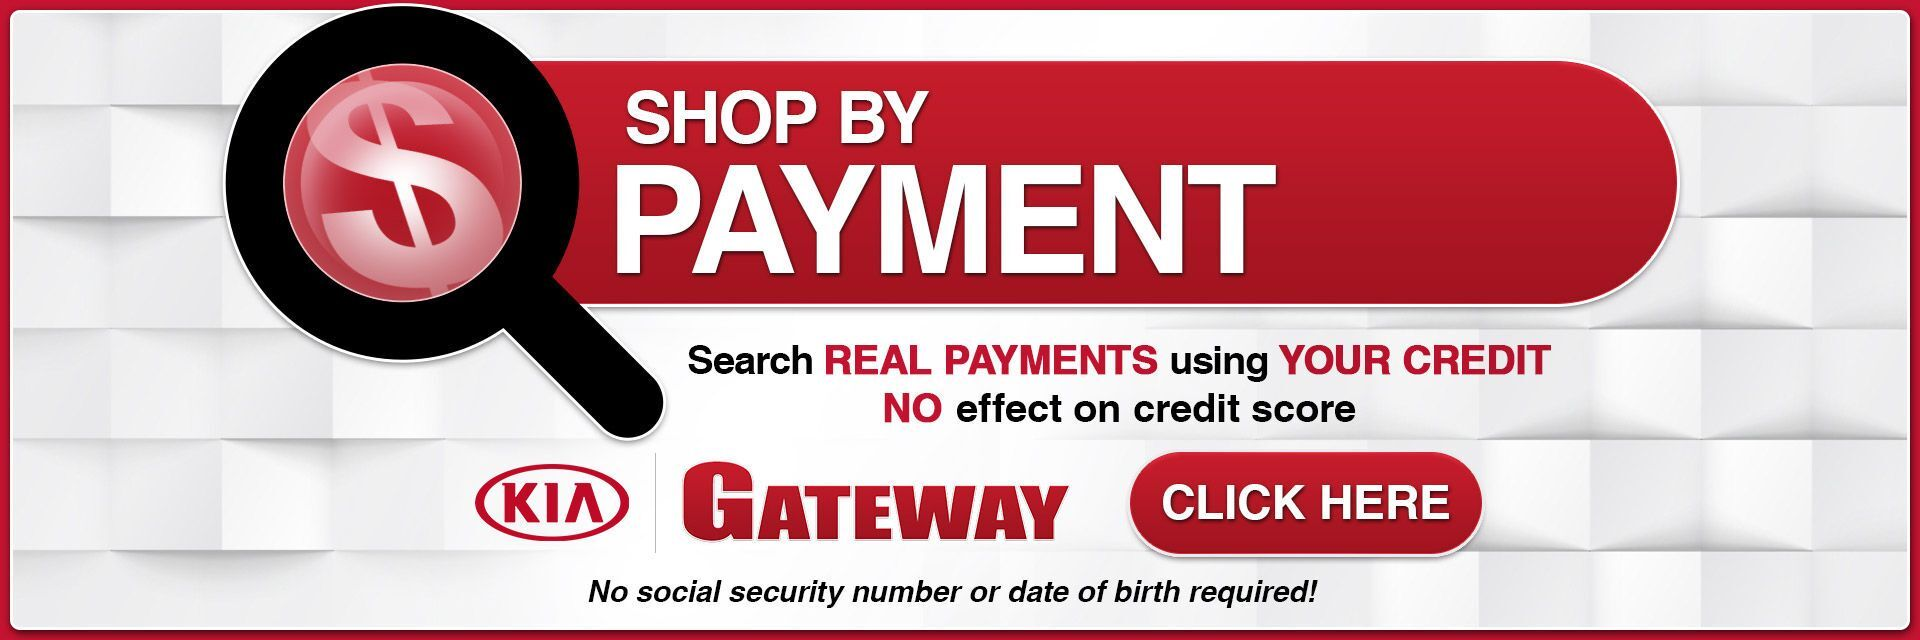 Shop By Payment